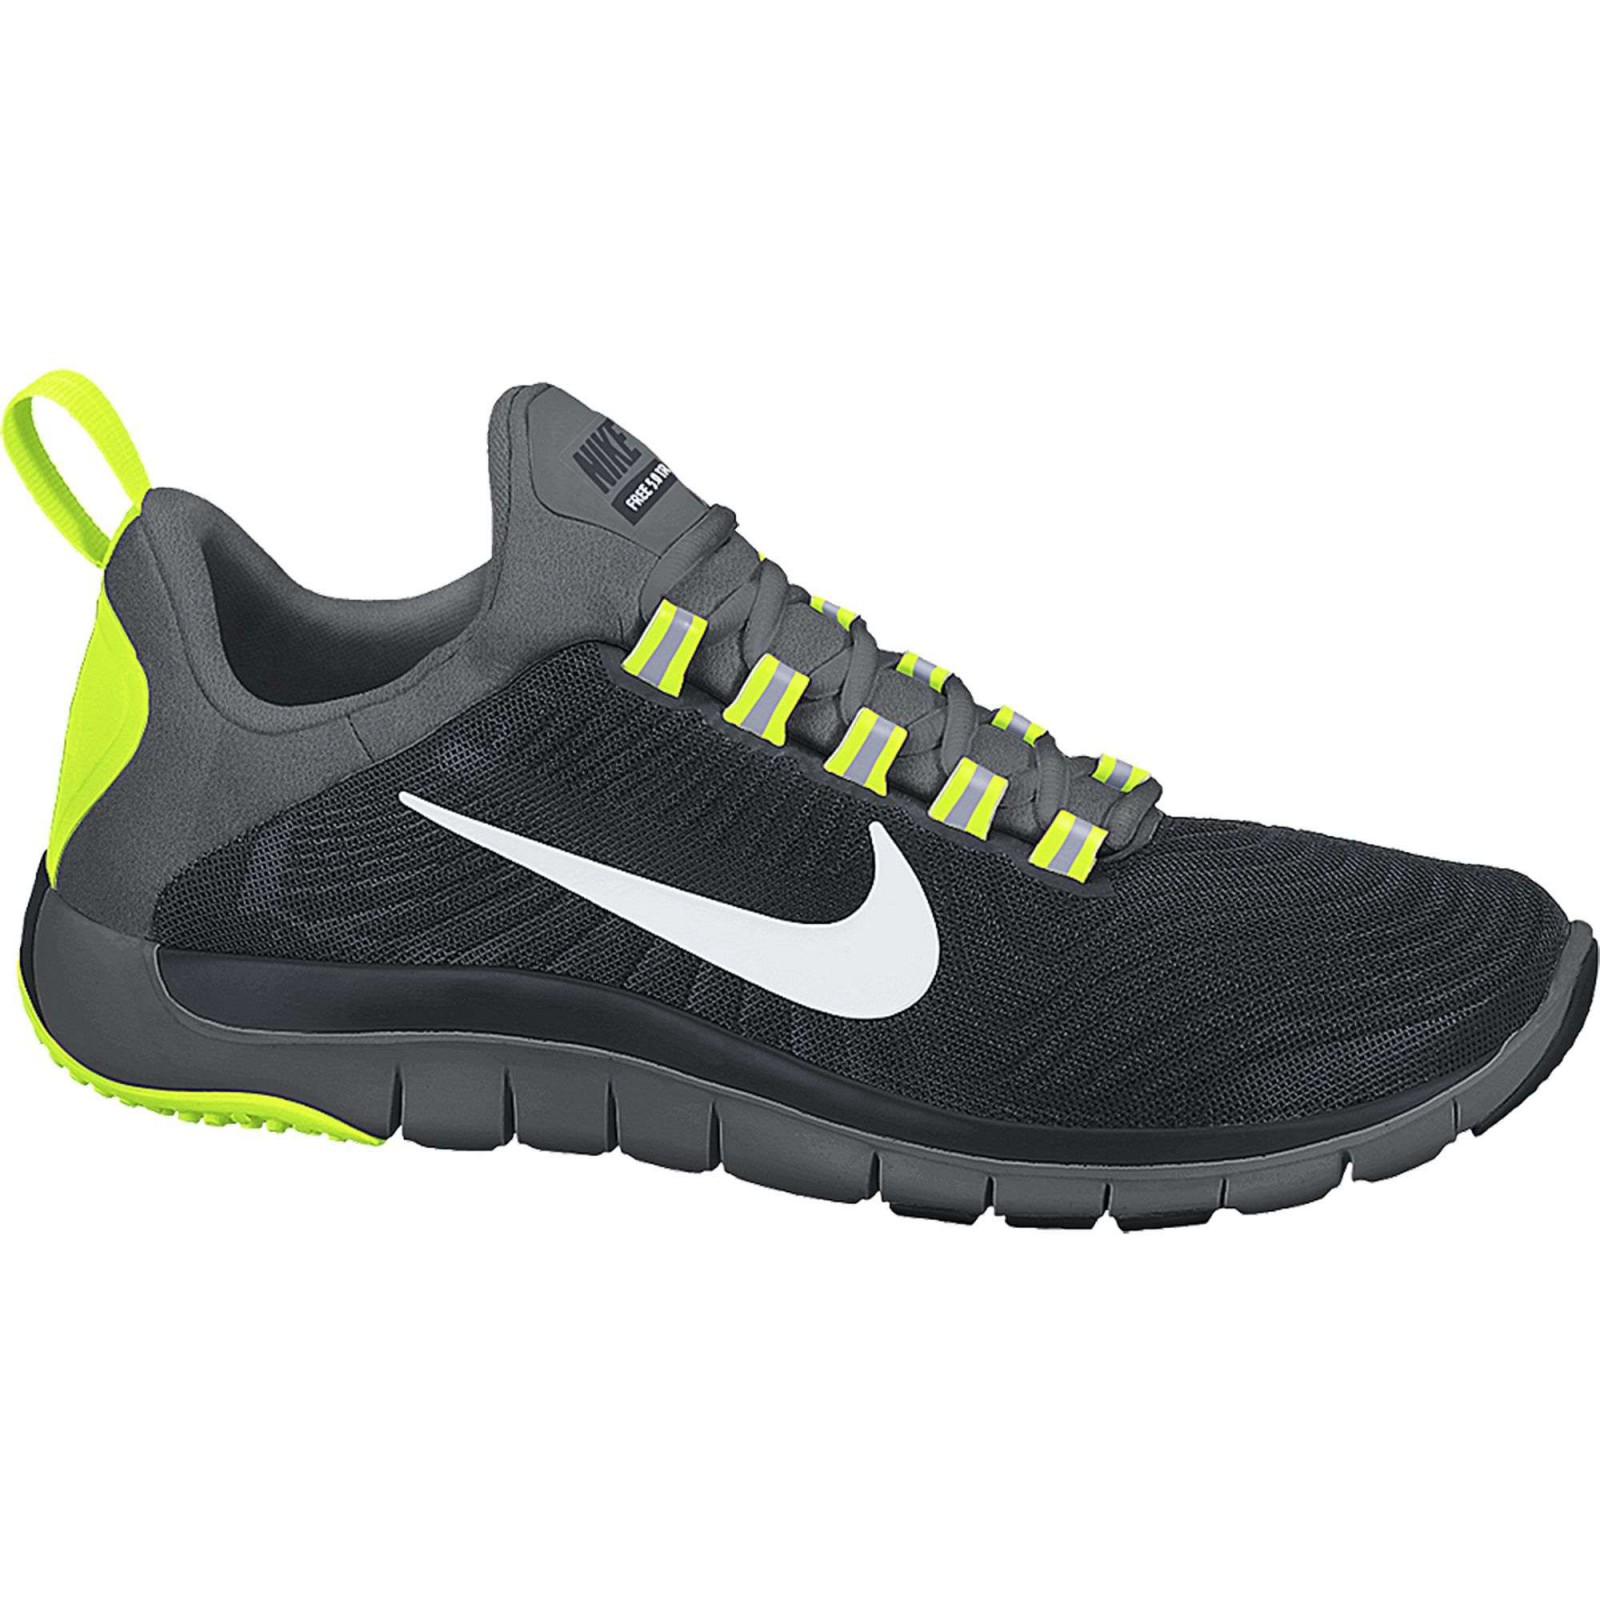 nike free trainer 5 0 v5 nike air max tn plus. Black Bedroom Furniture Sets. Home Design Ideas